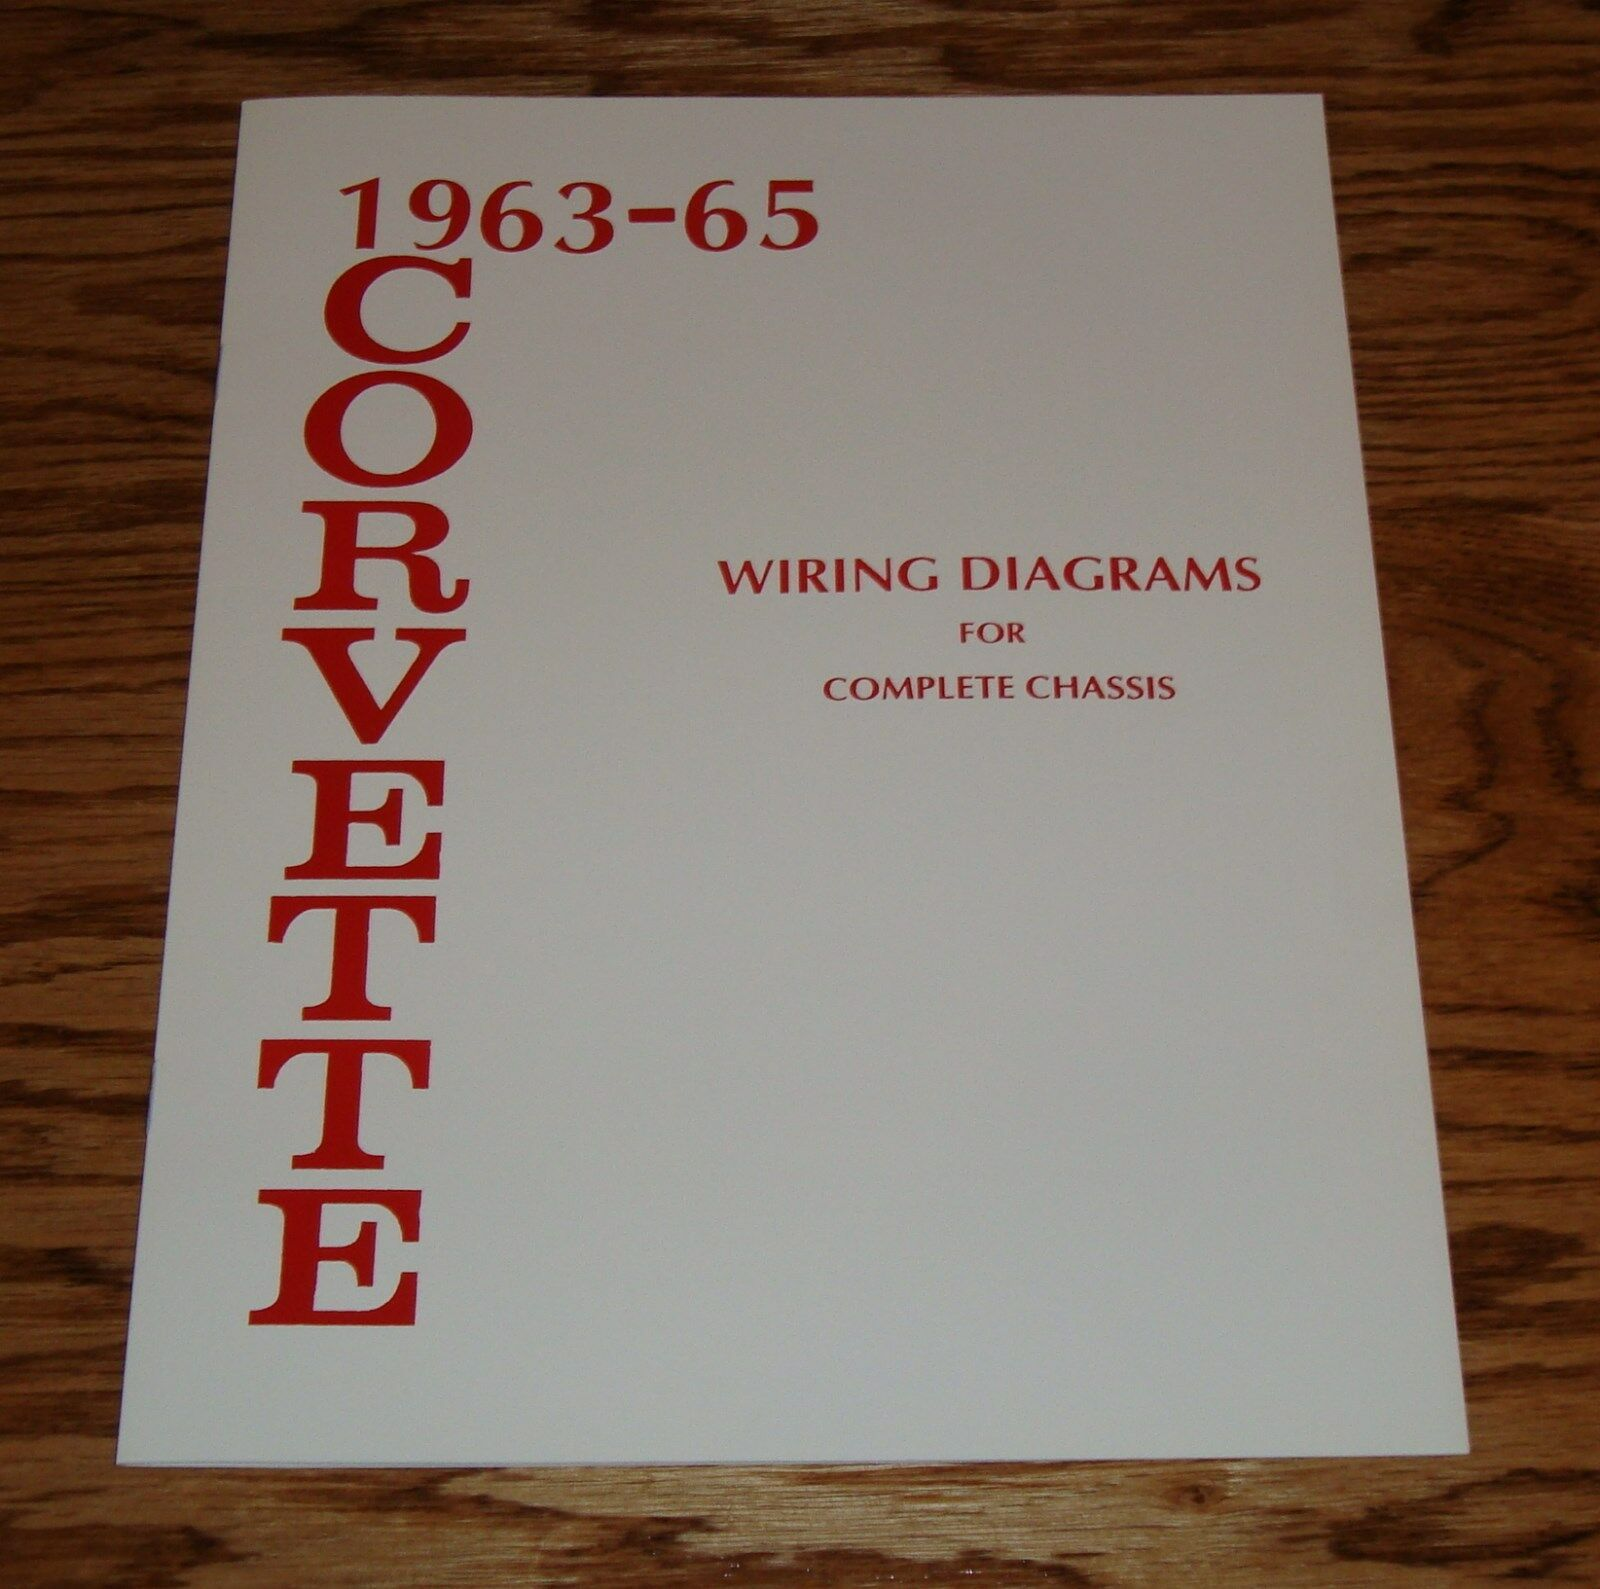 1963 1964 1965 Chevrolet Corvette Wiring Diagram Manual For Complete 1976 Diagrams Chassis 1 Of 1only 2 Available See More